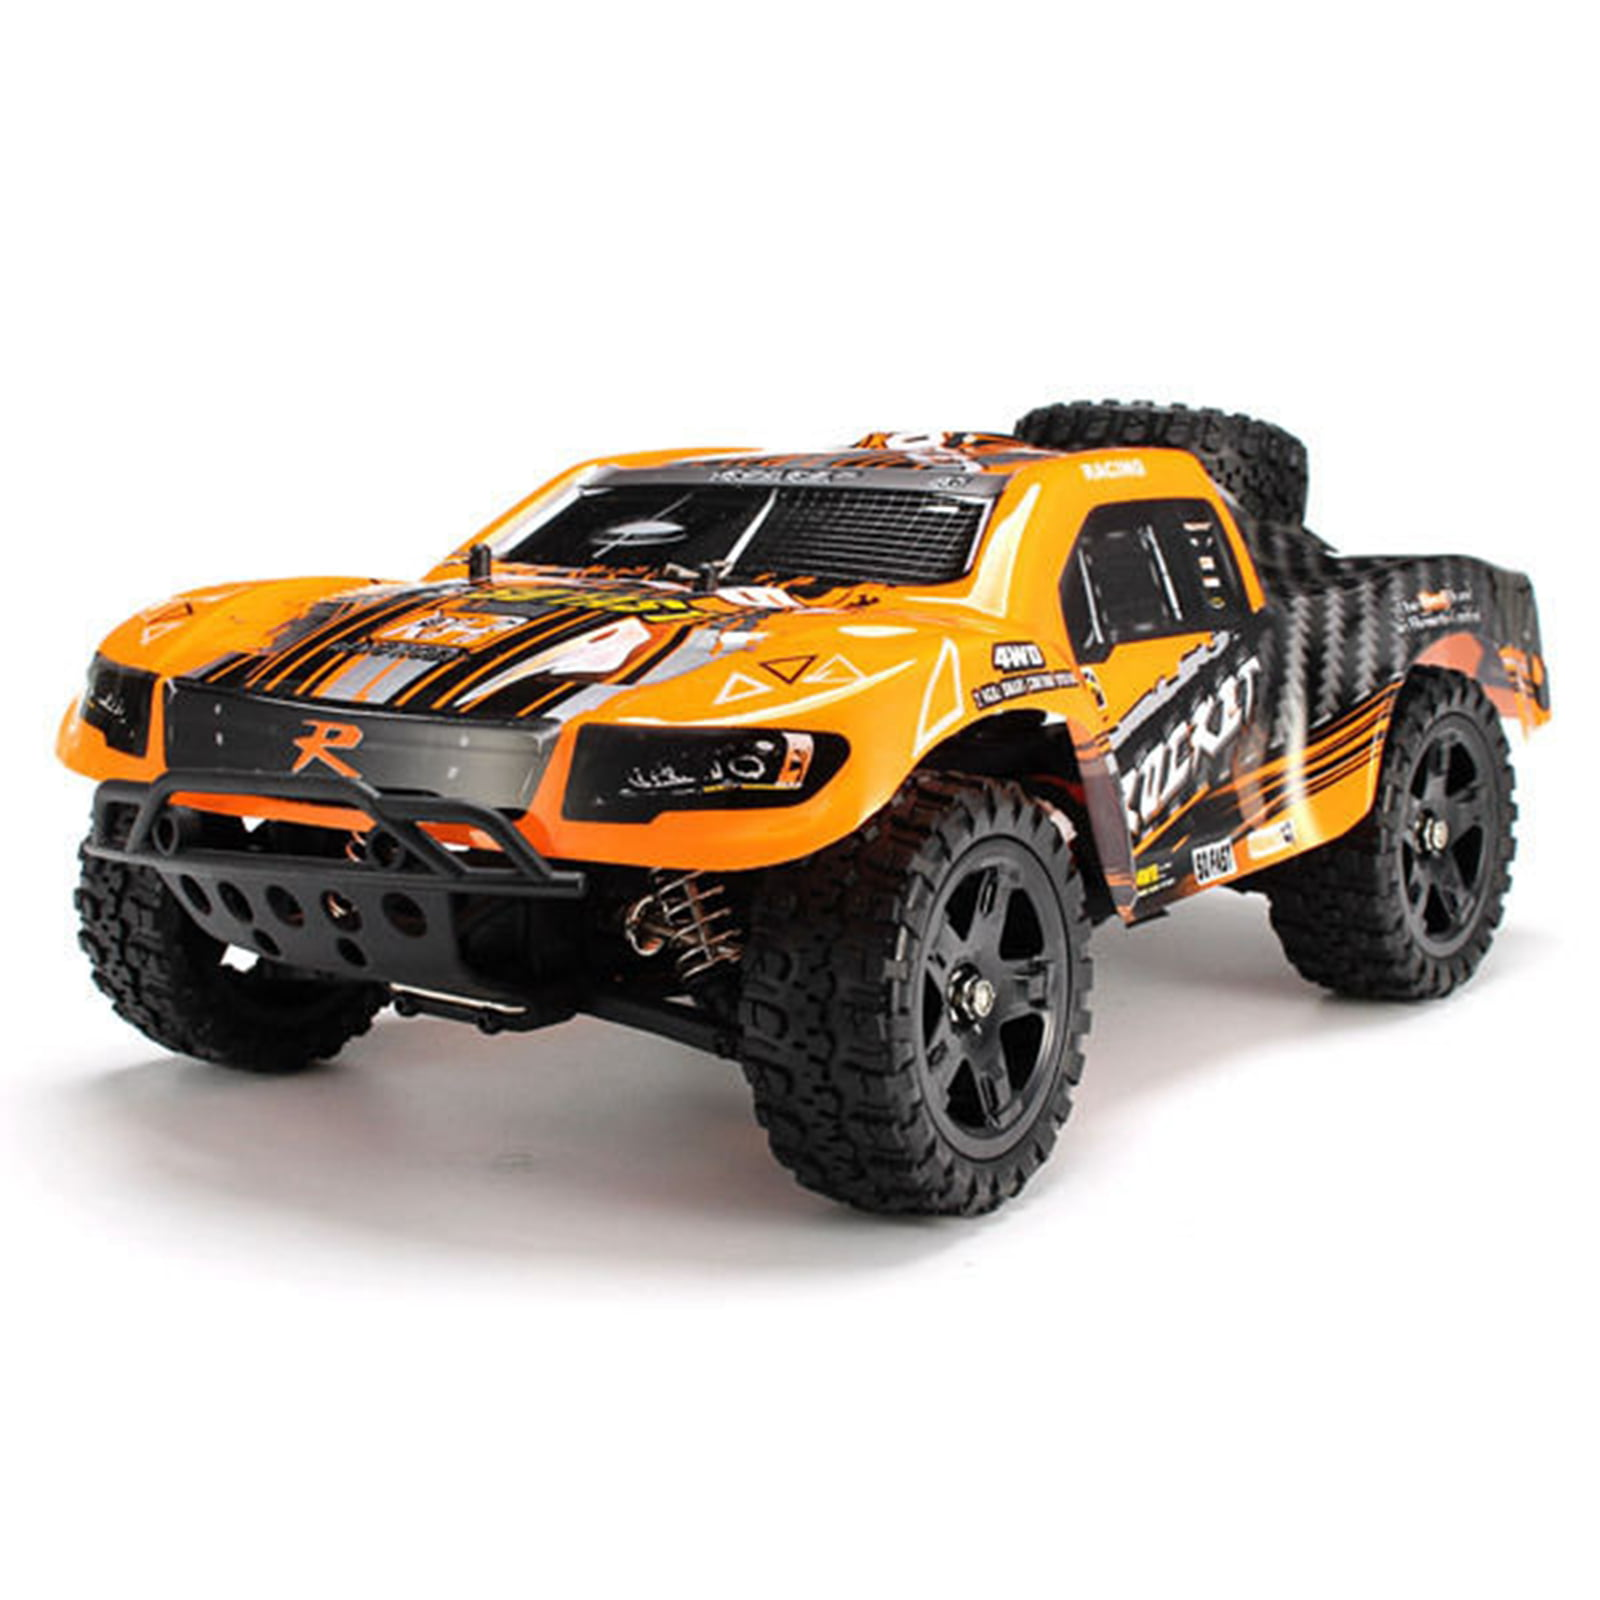 REMO 1621 1 16 2.4G 4WD RC Truck Car Waterproof Brushed Short Course SUV 50km h by Cheerwing